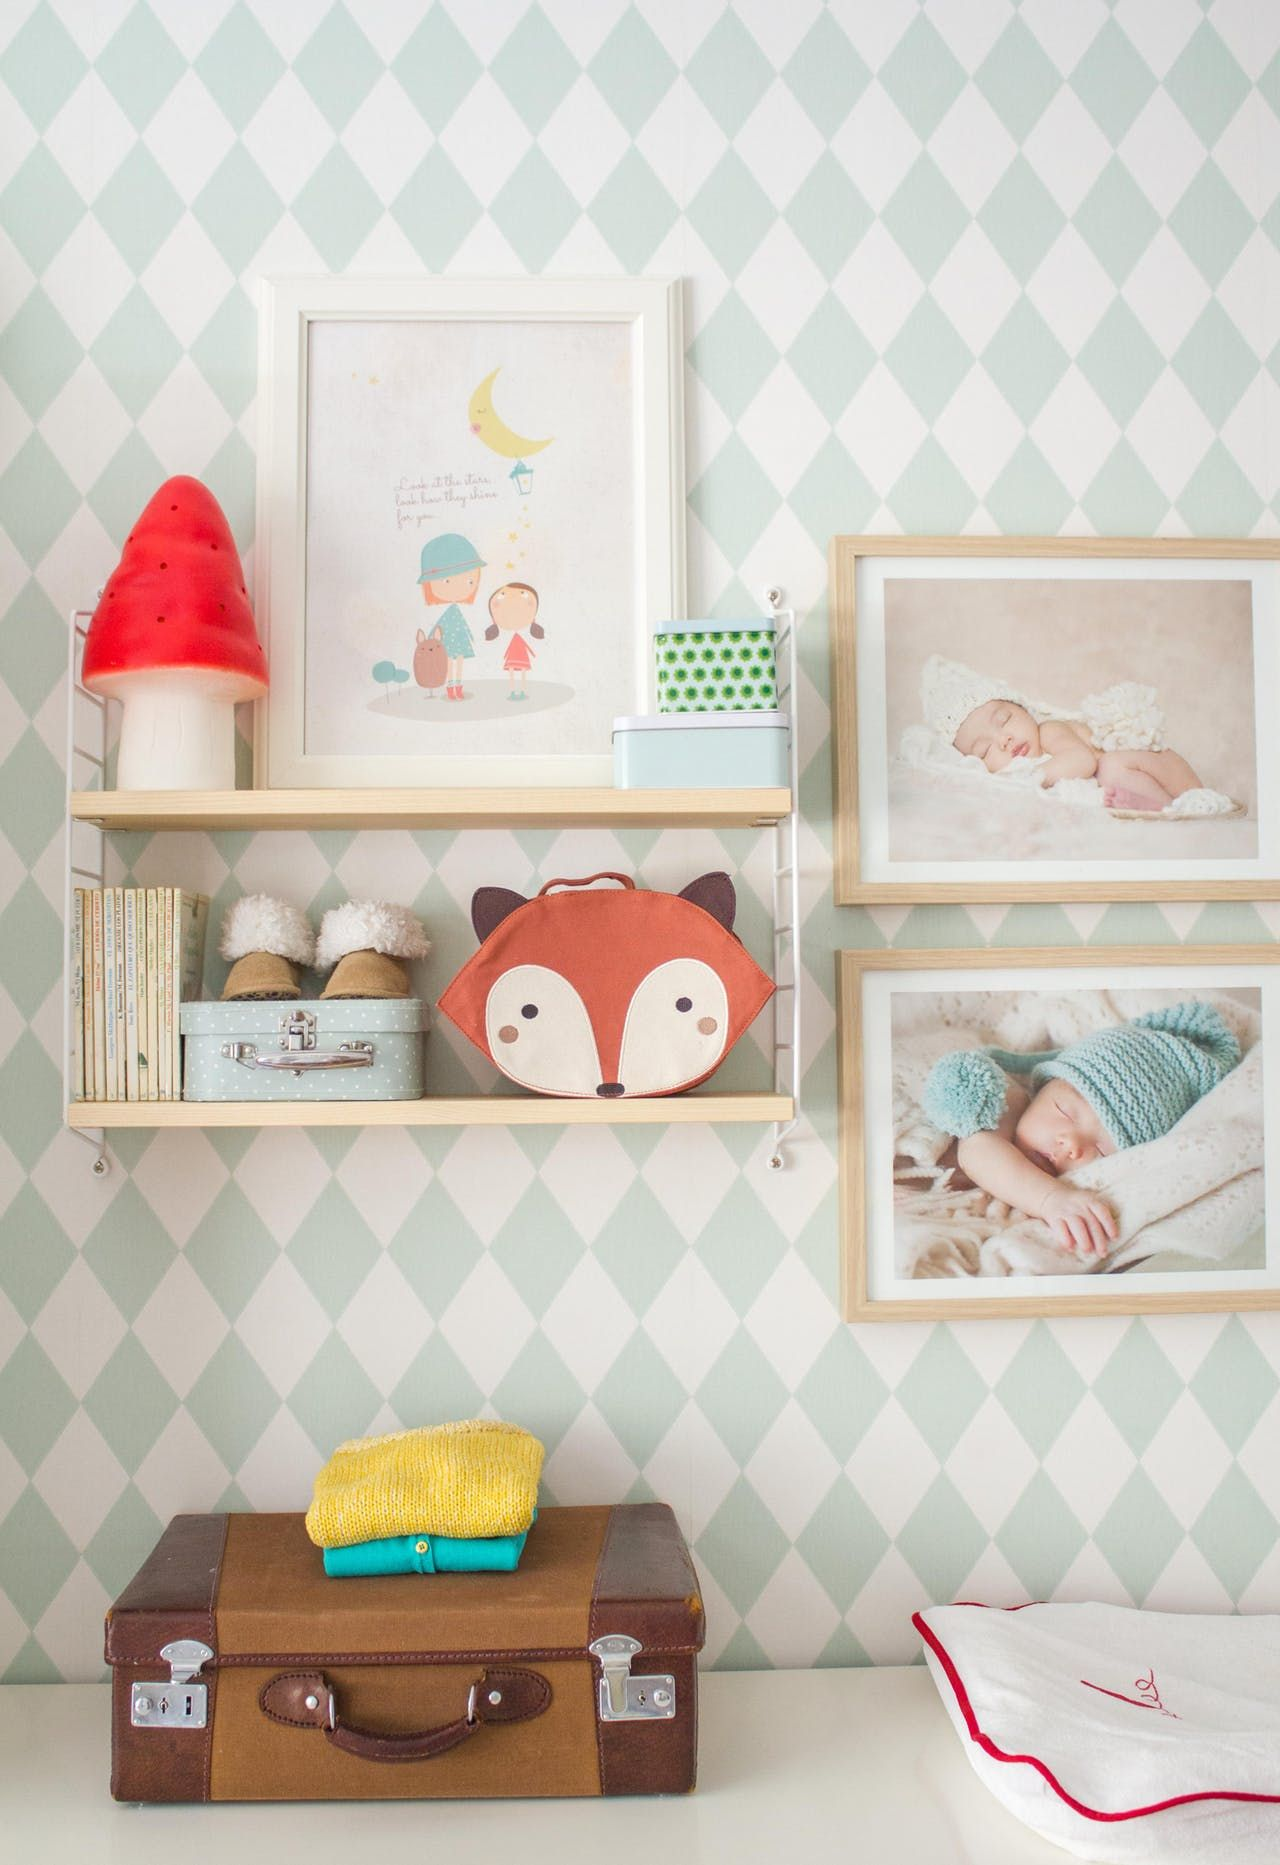 Martina and Lola's Sweet Shared Space